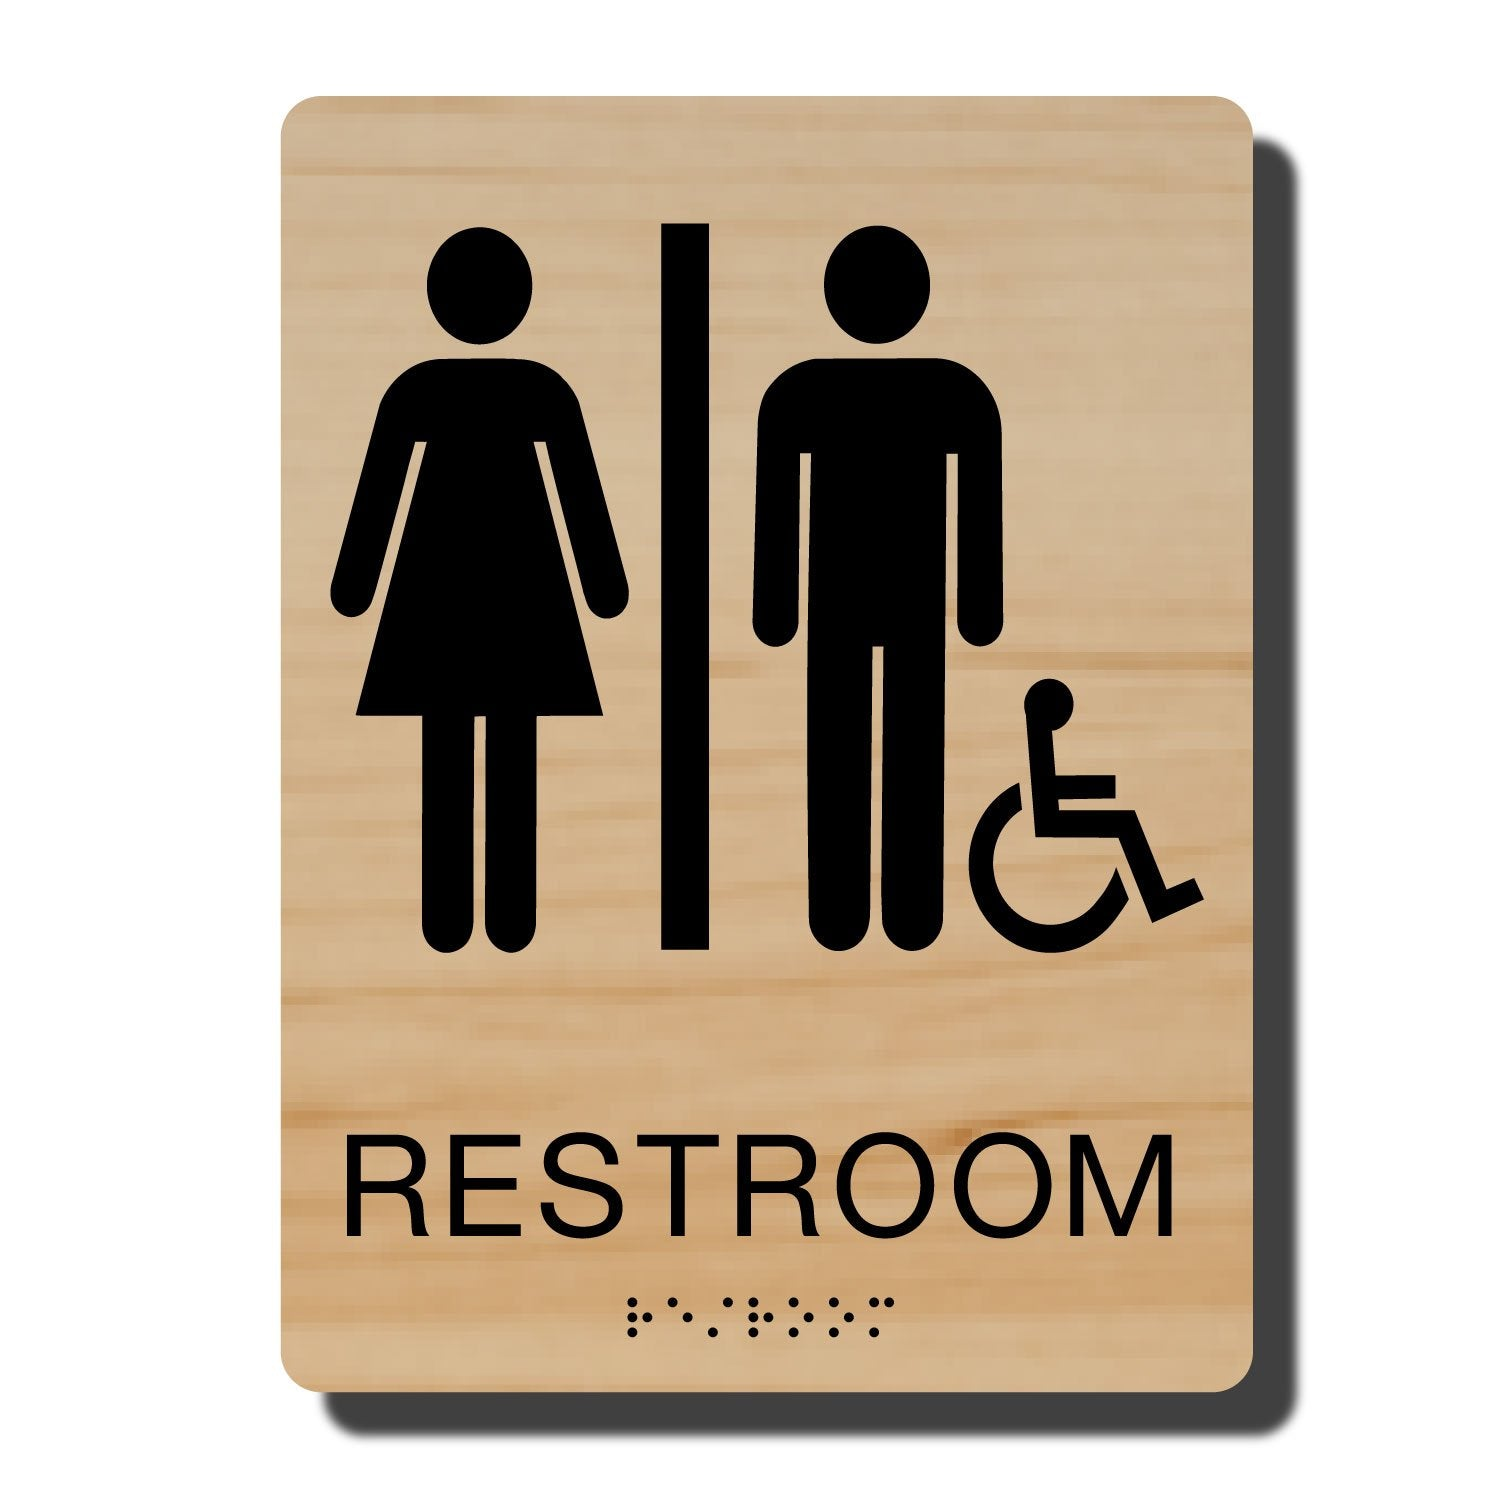 Standard ADA Sign - NapADASigns - ADA Handicap Restroom Sign with Braille - Cashew with Black - 6